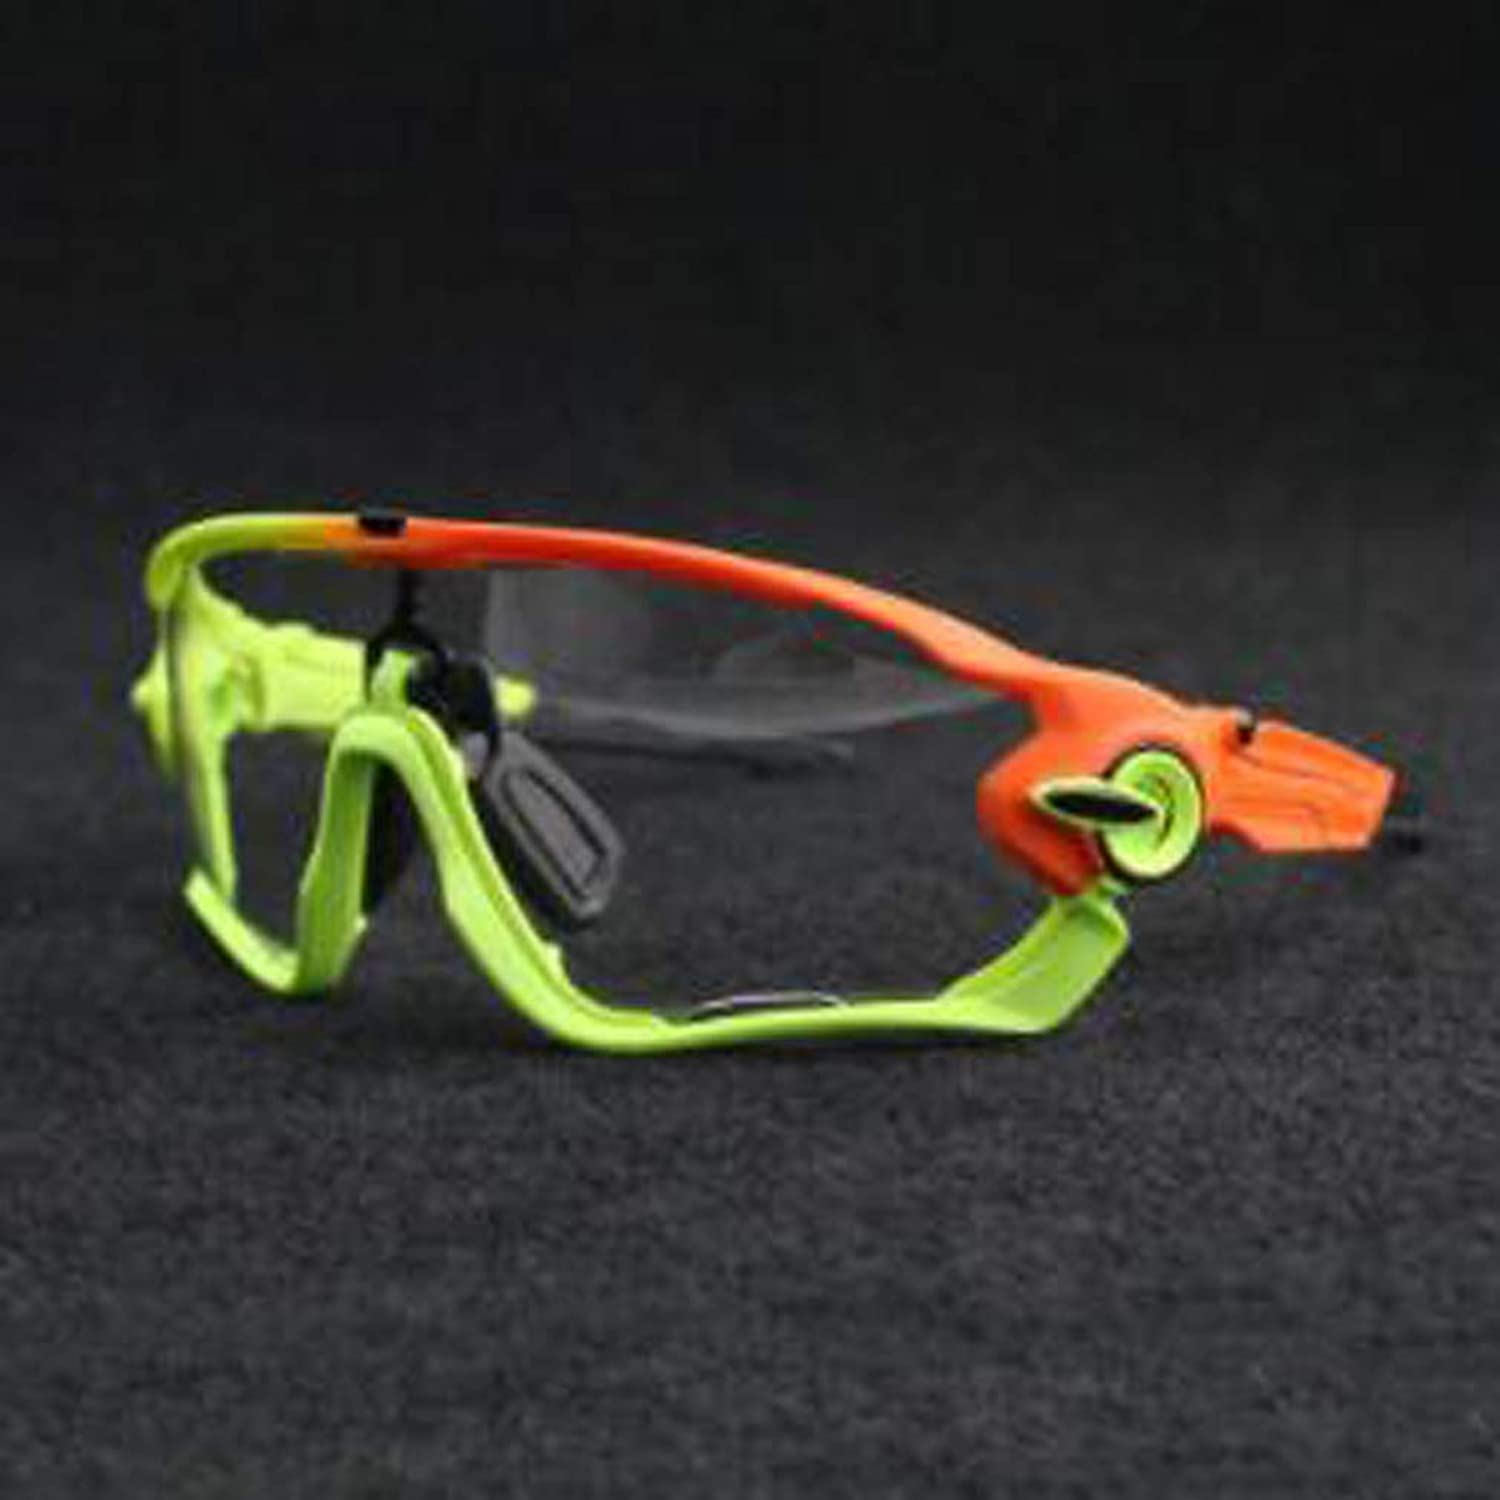 Mountain Bike Discoloration Windproof Goggles, PC Explosion-Proof Lens for Riding Hiking Hiking Fishing Skiing